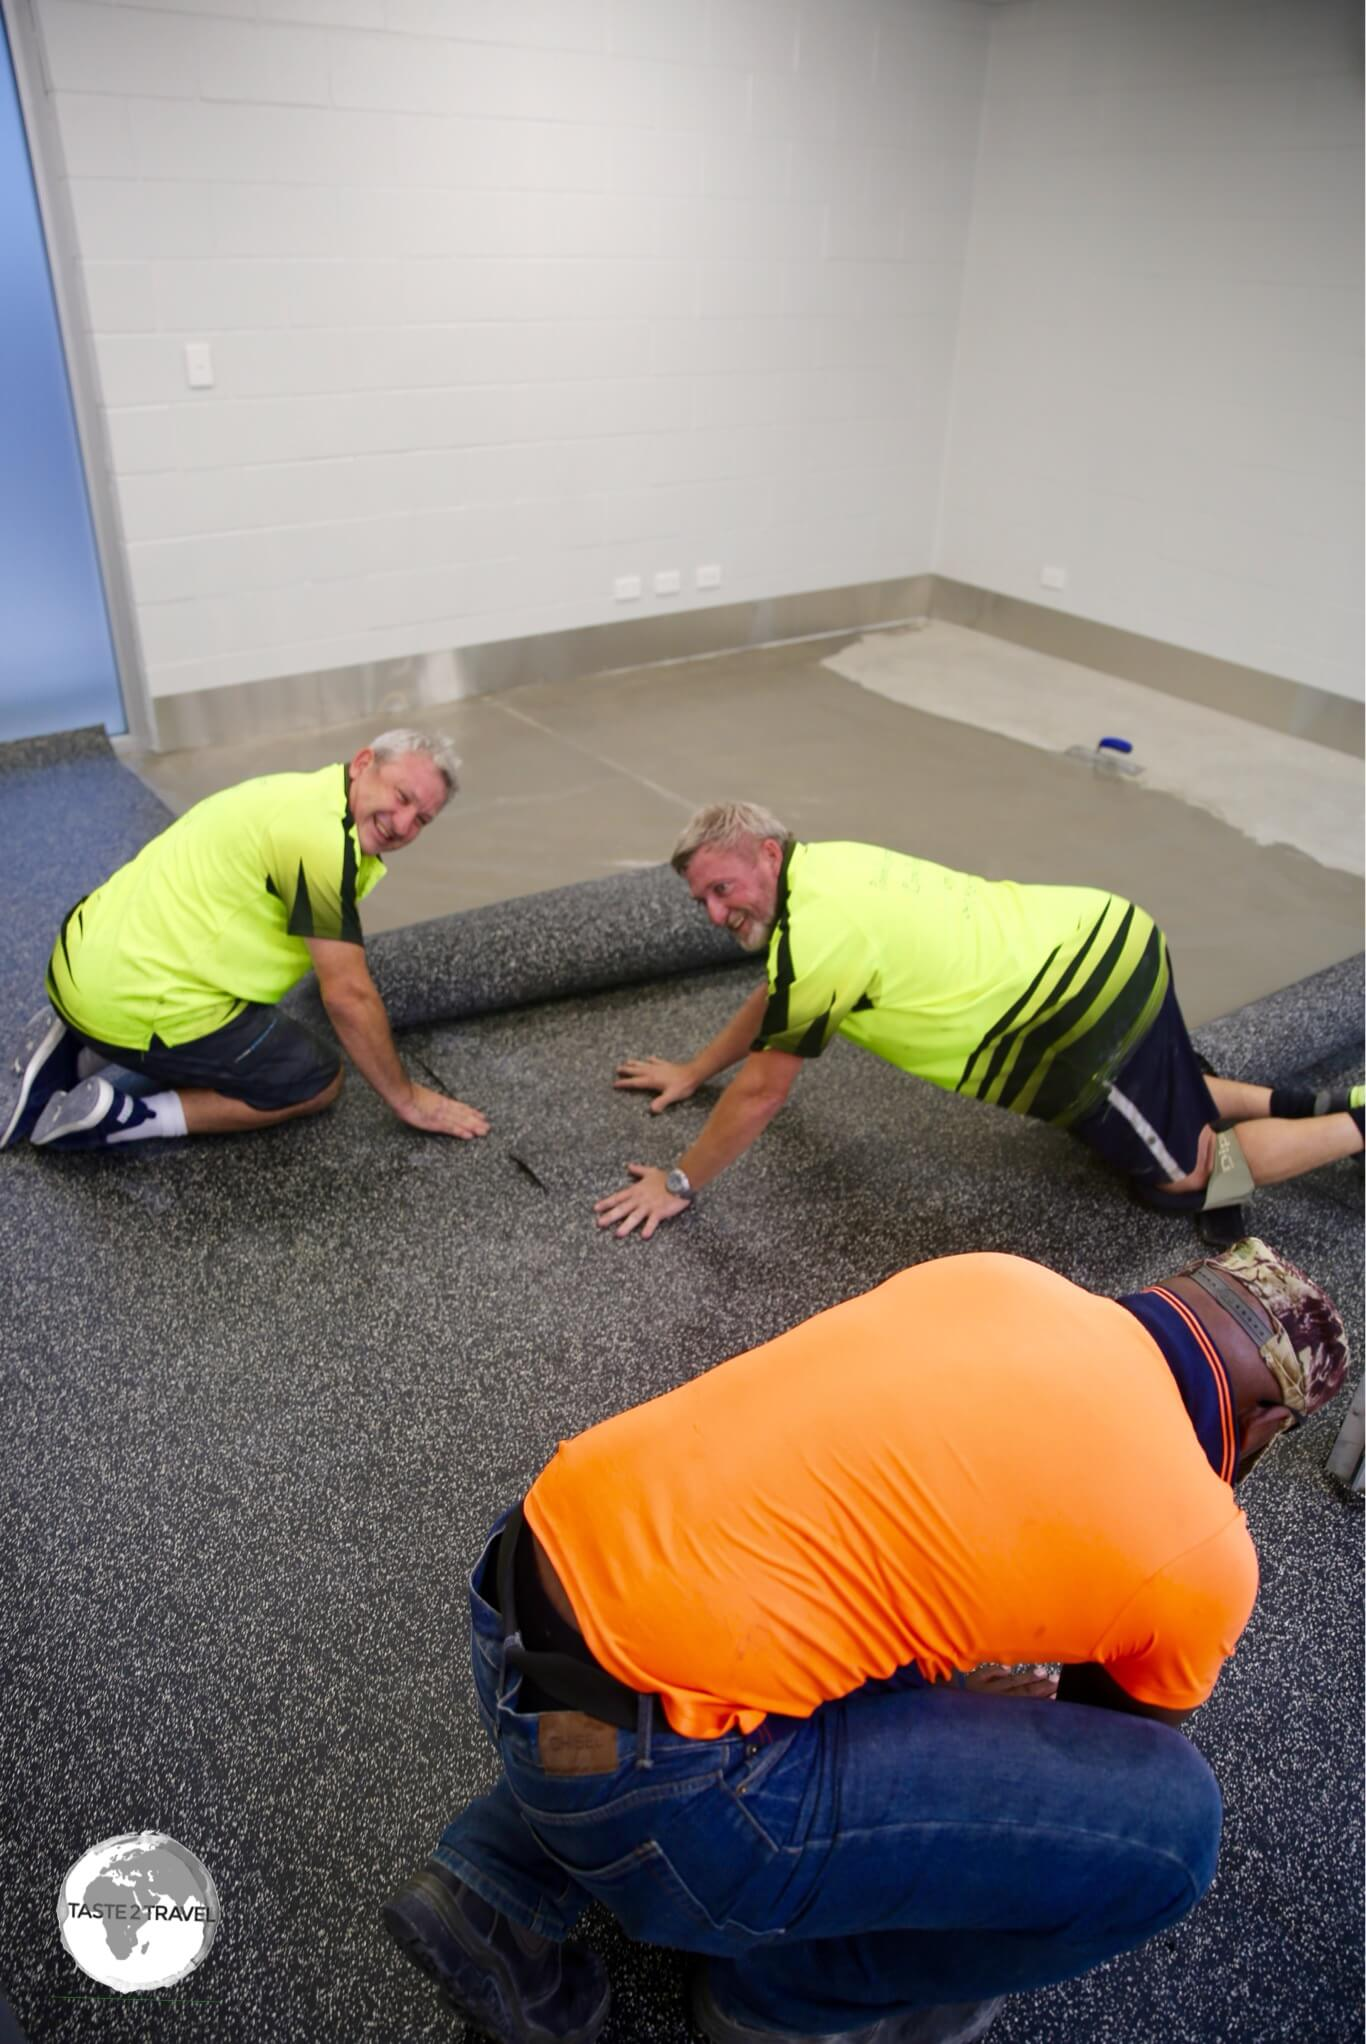 A team from Australia install the flooring in the new terminal.